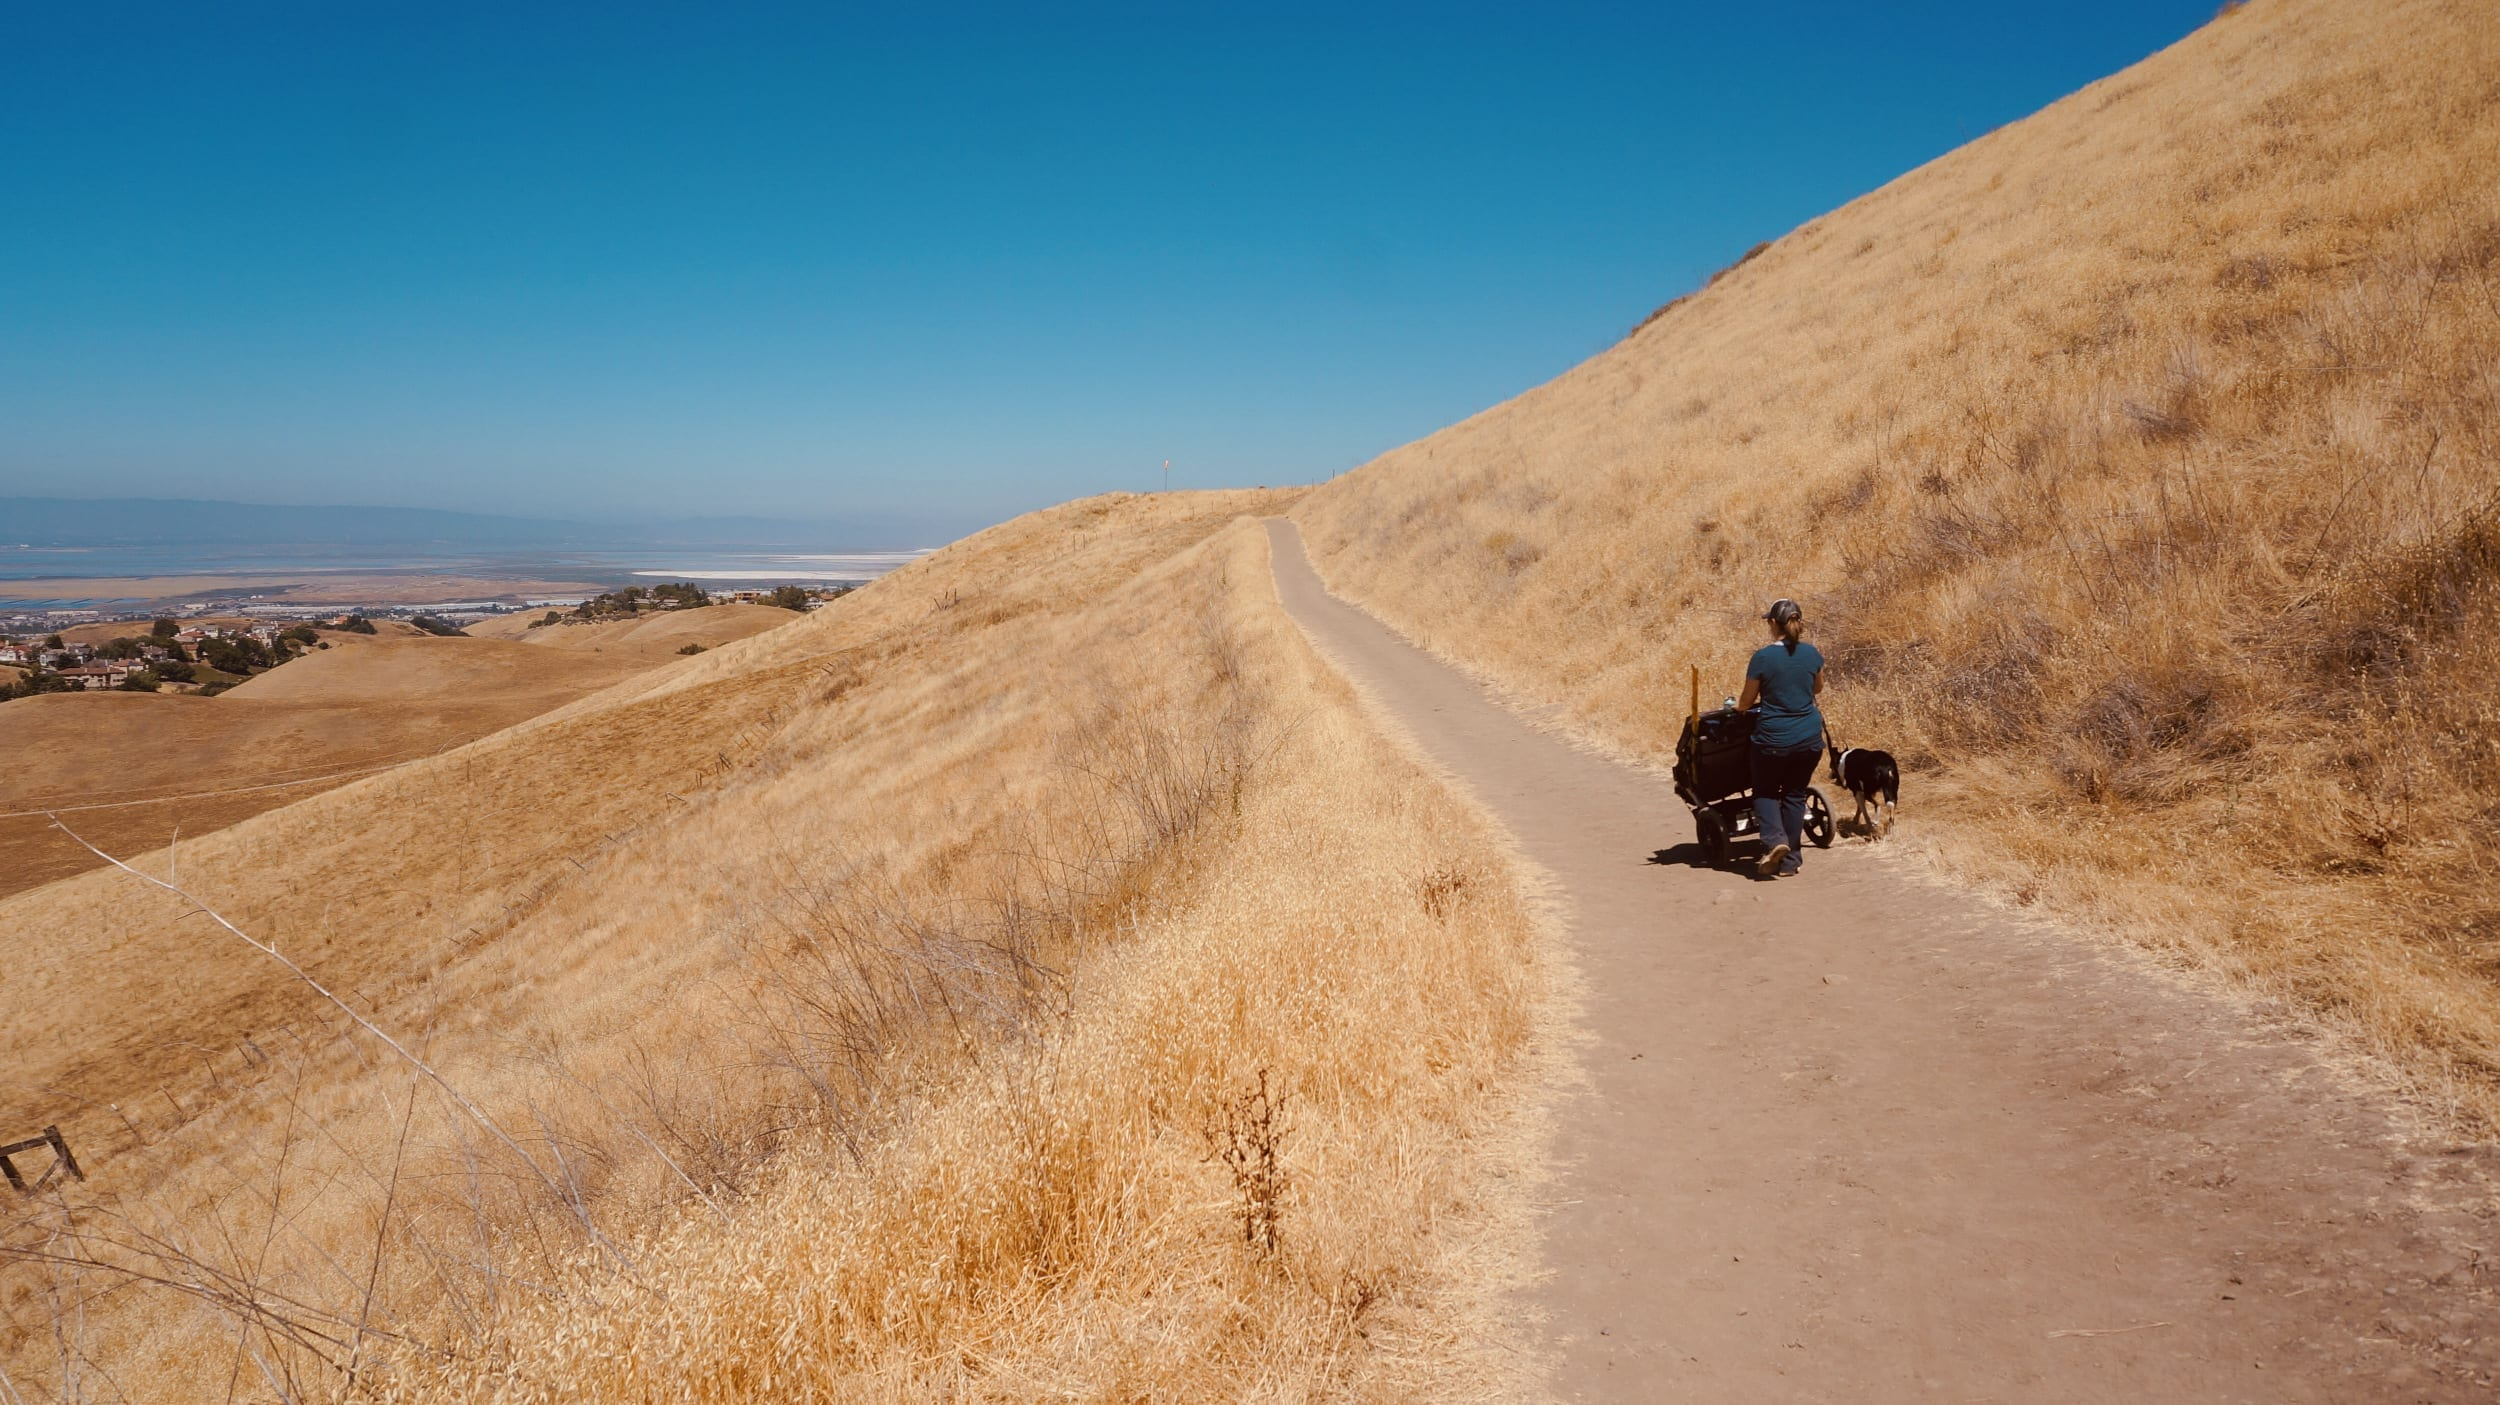 Ed R. Levin County Park: South Bay Hike with Kids in the Milpitas Foothills